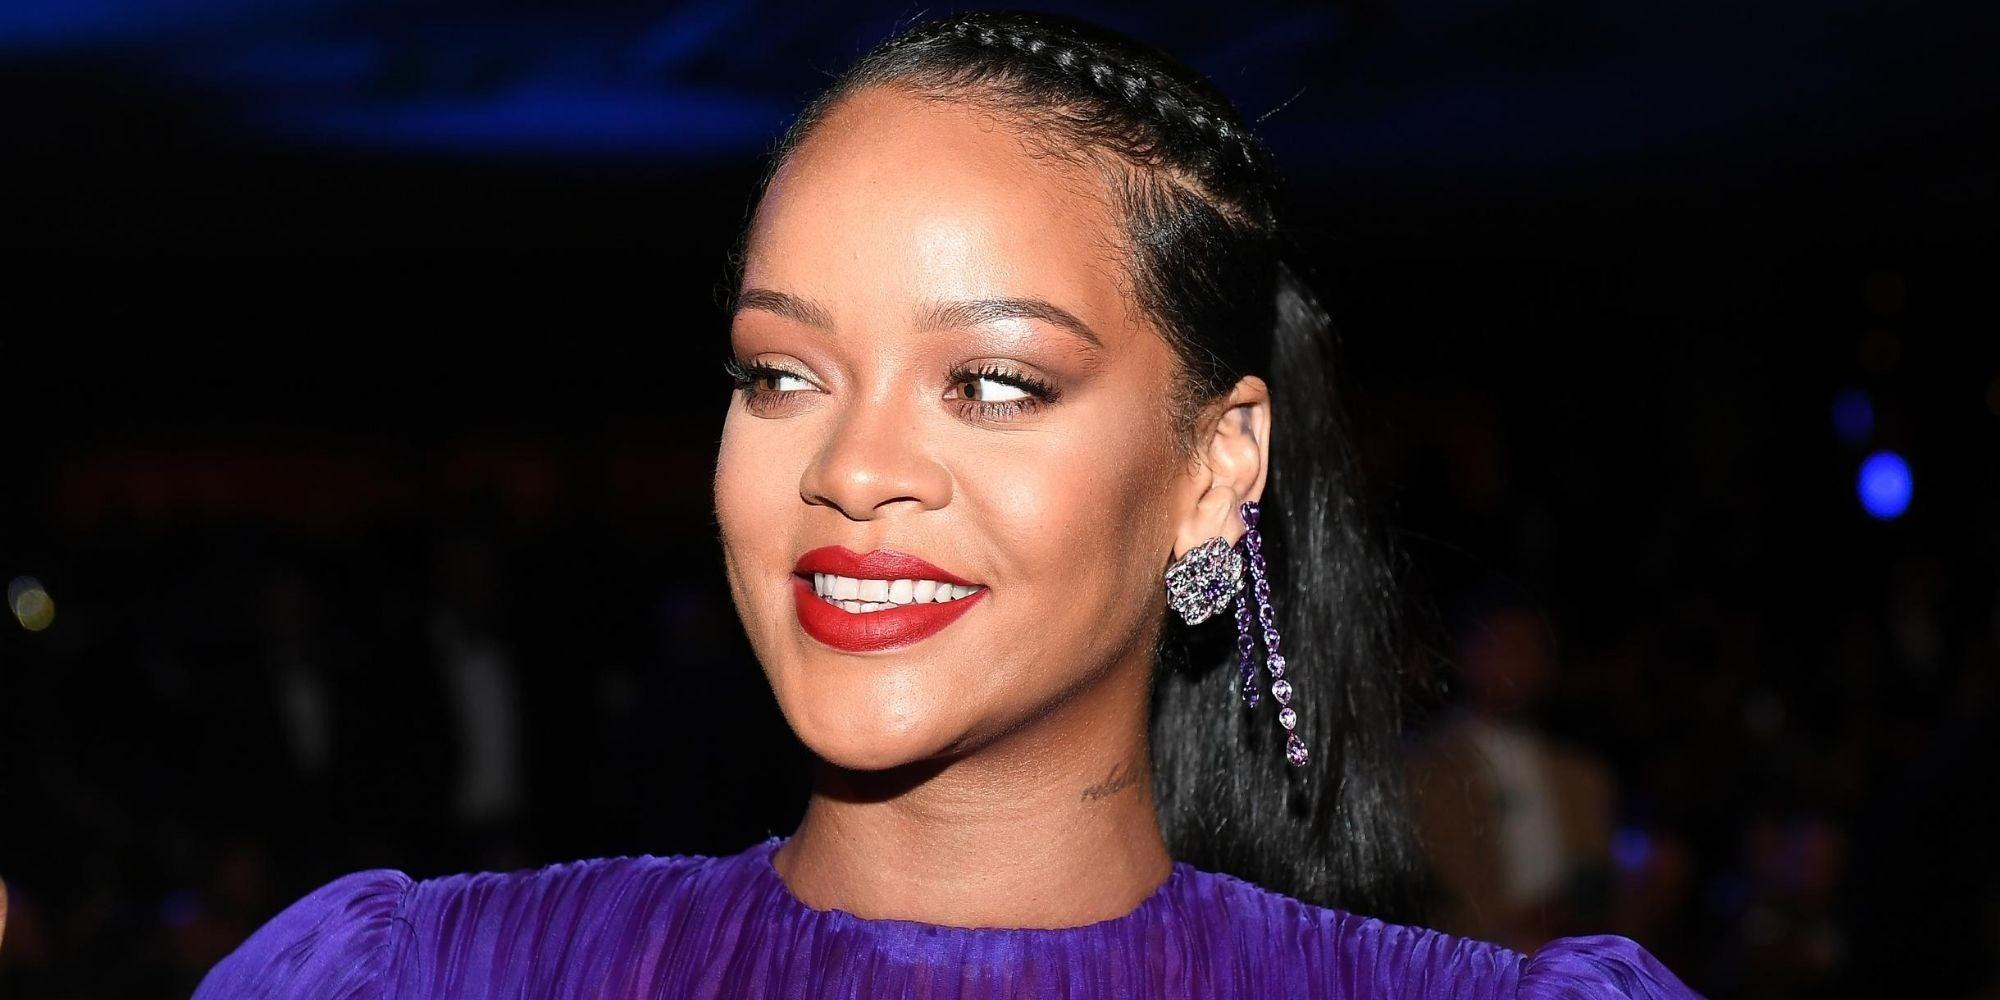 Rihanna Hilariously Embodies Her Fans By Asking Look-Alike Woman - 'Where The Album Sis?'